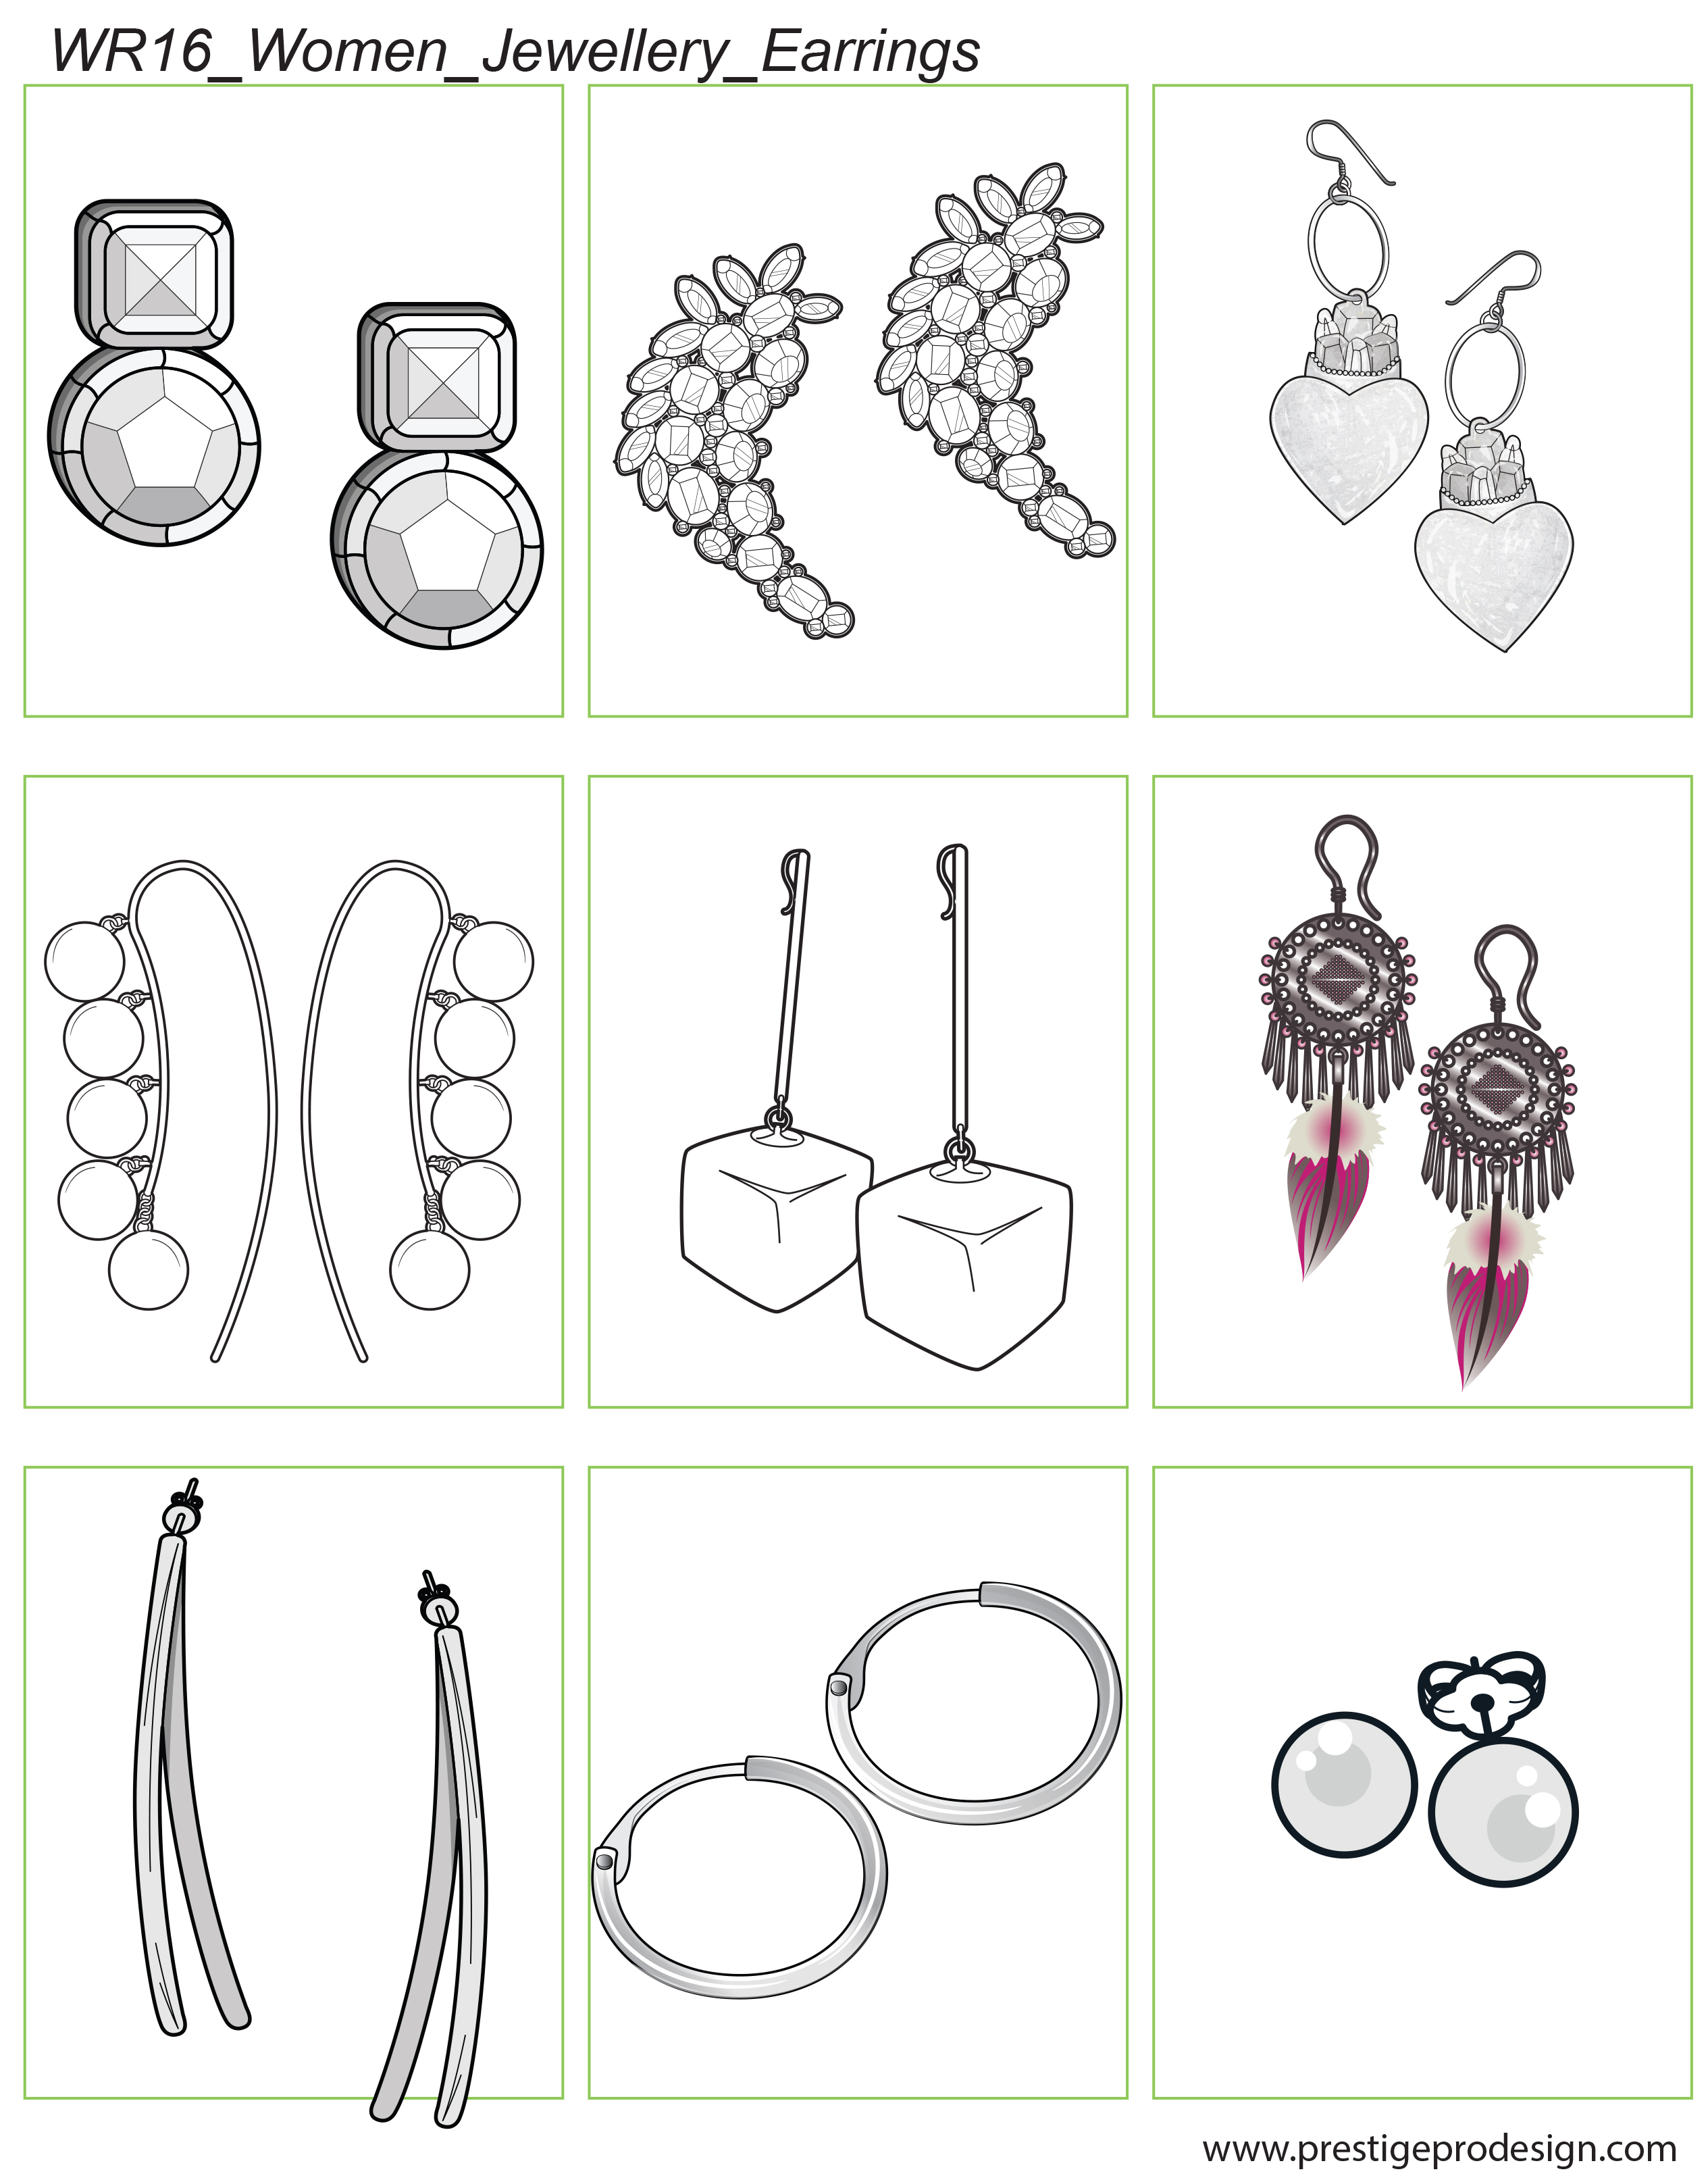 WR16_Women_Jewellery_Earrings